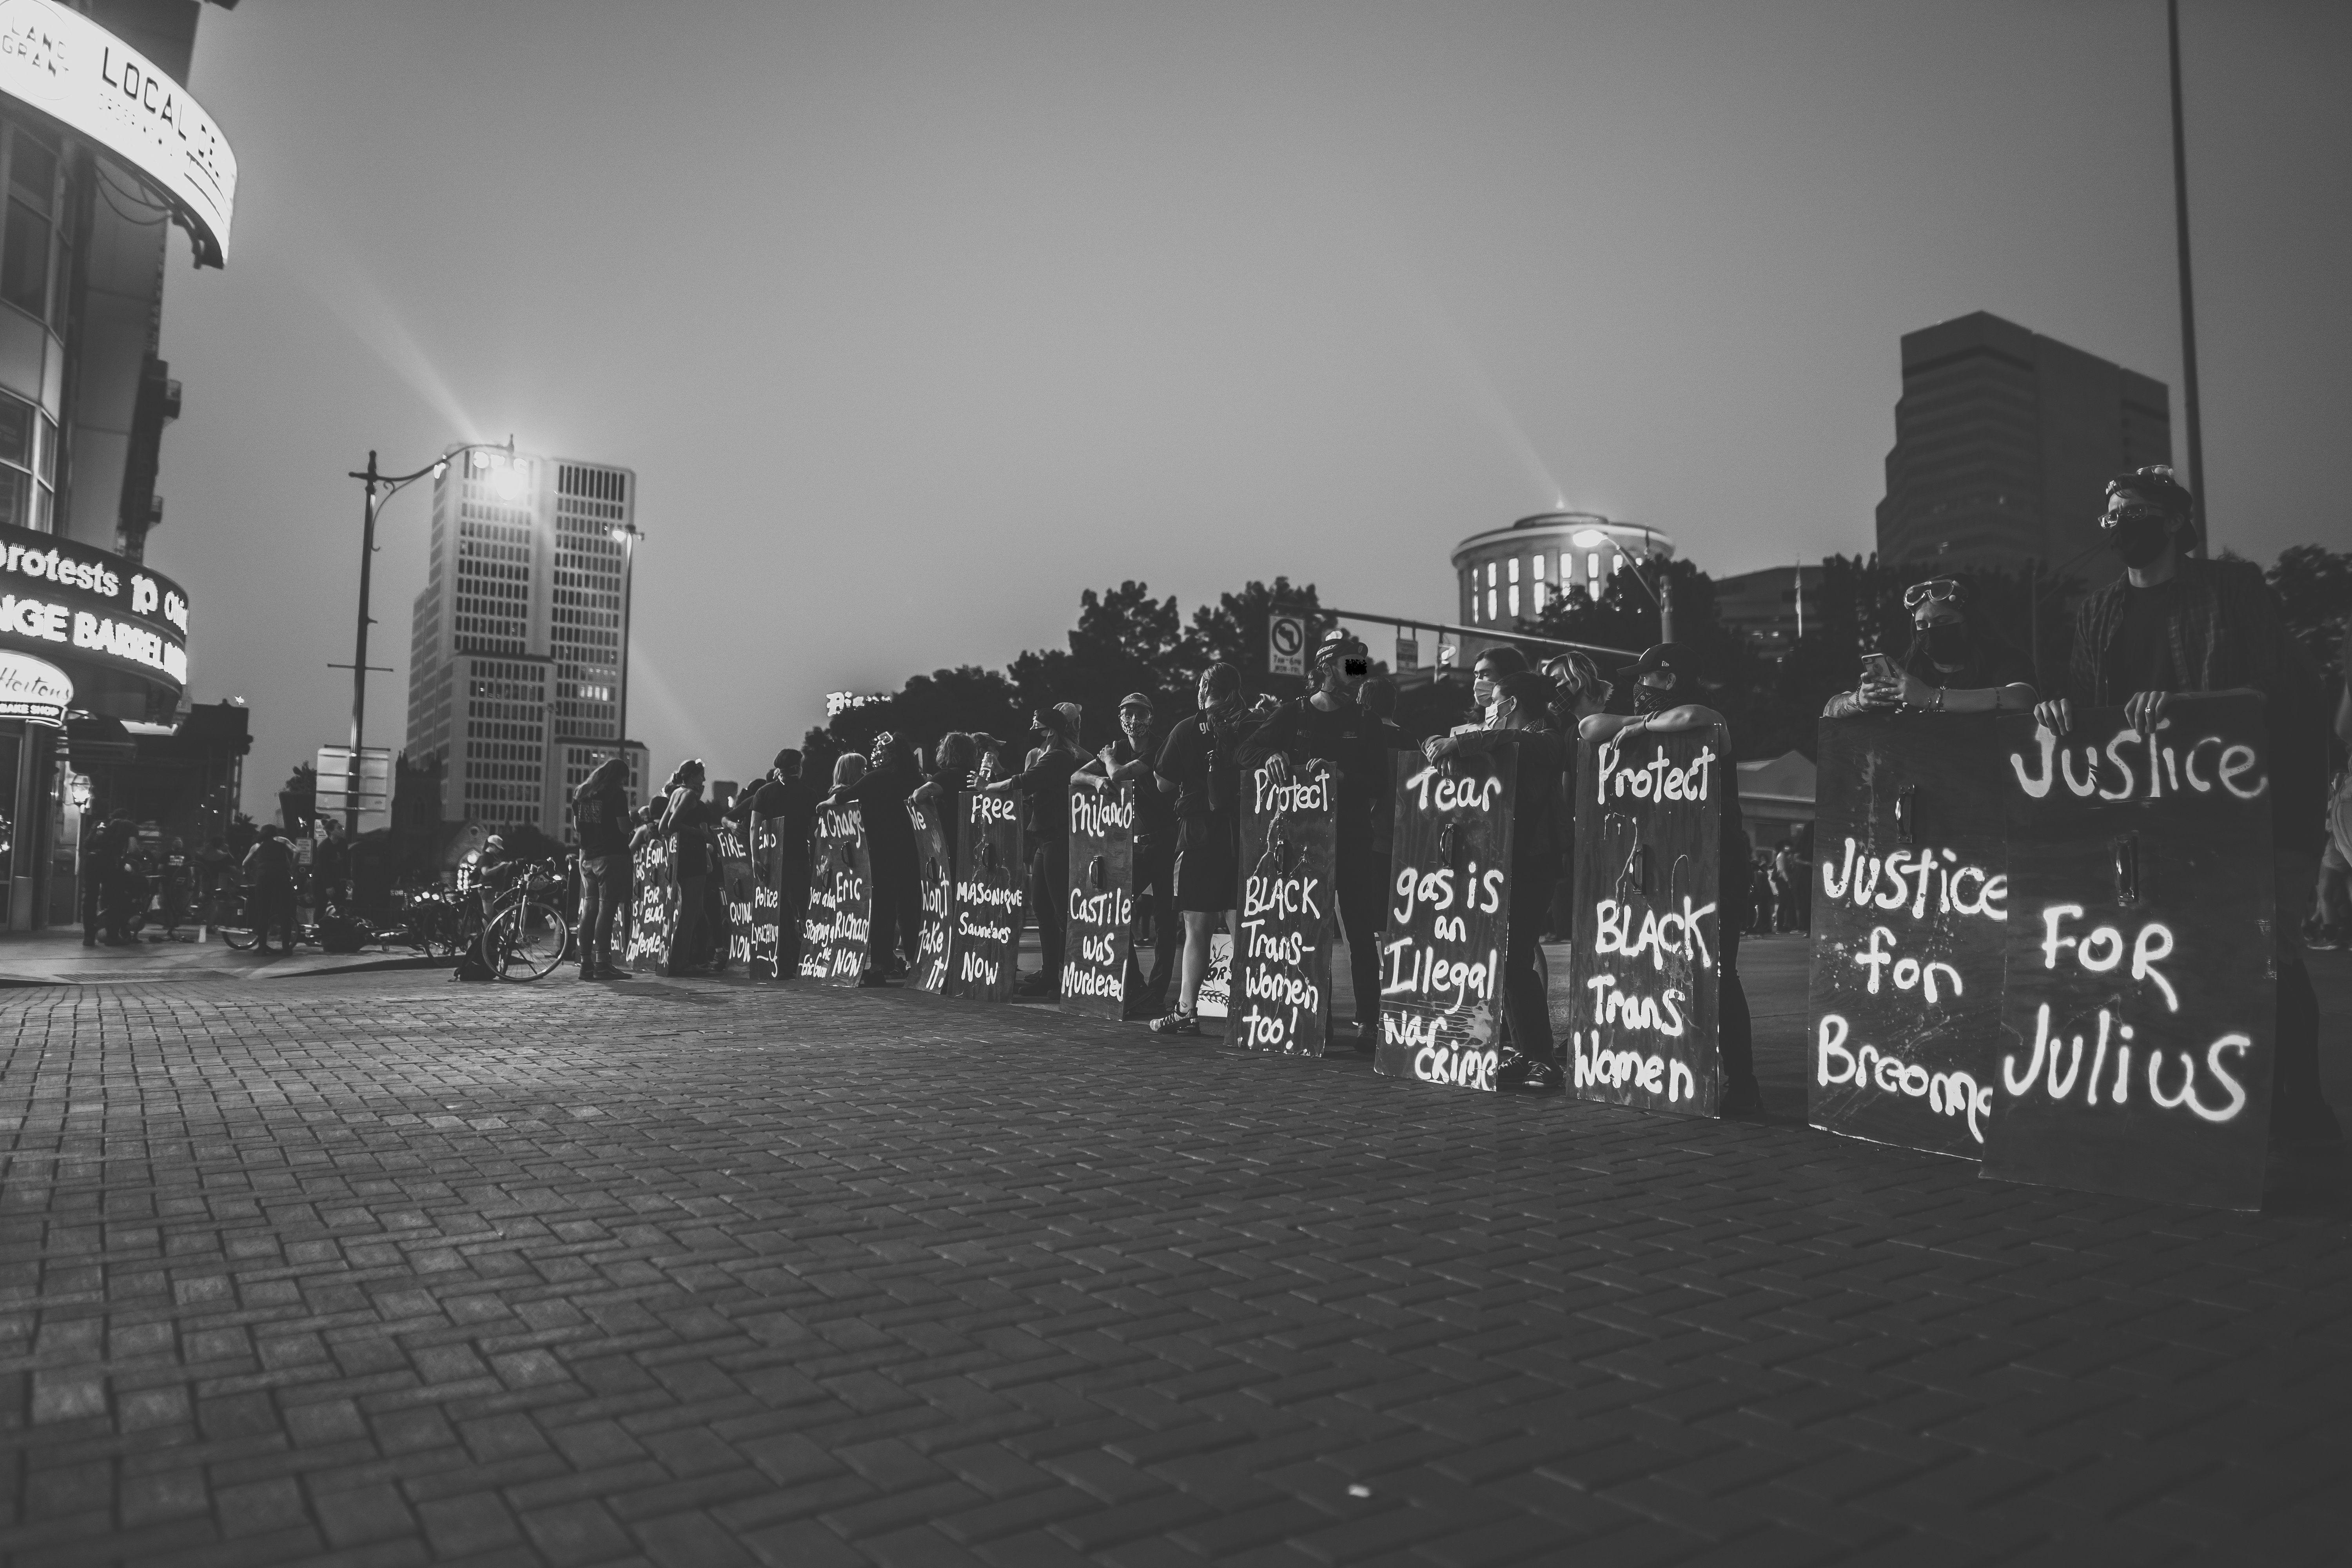 "A black and white photograph that shows BLM protesters lined up from the bottom right corner of the image and receding into the background in the middle of the frame. The protestors stand behind signs that reach chest-height in downtown Columbus. Some read: ""Justice for Julius,"" ""Protect Black Trans Women,"" or ""Tear gas is an Illegal war crime."""